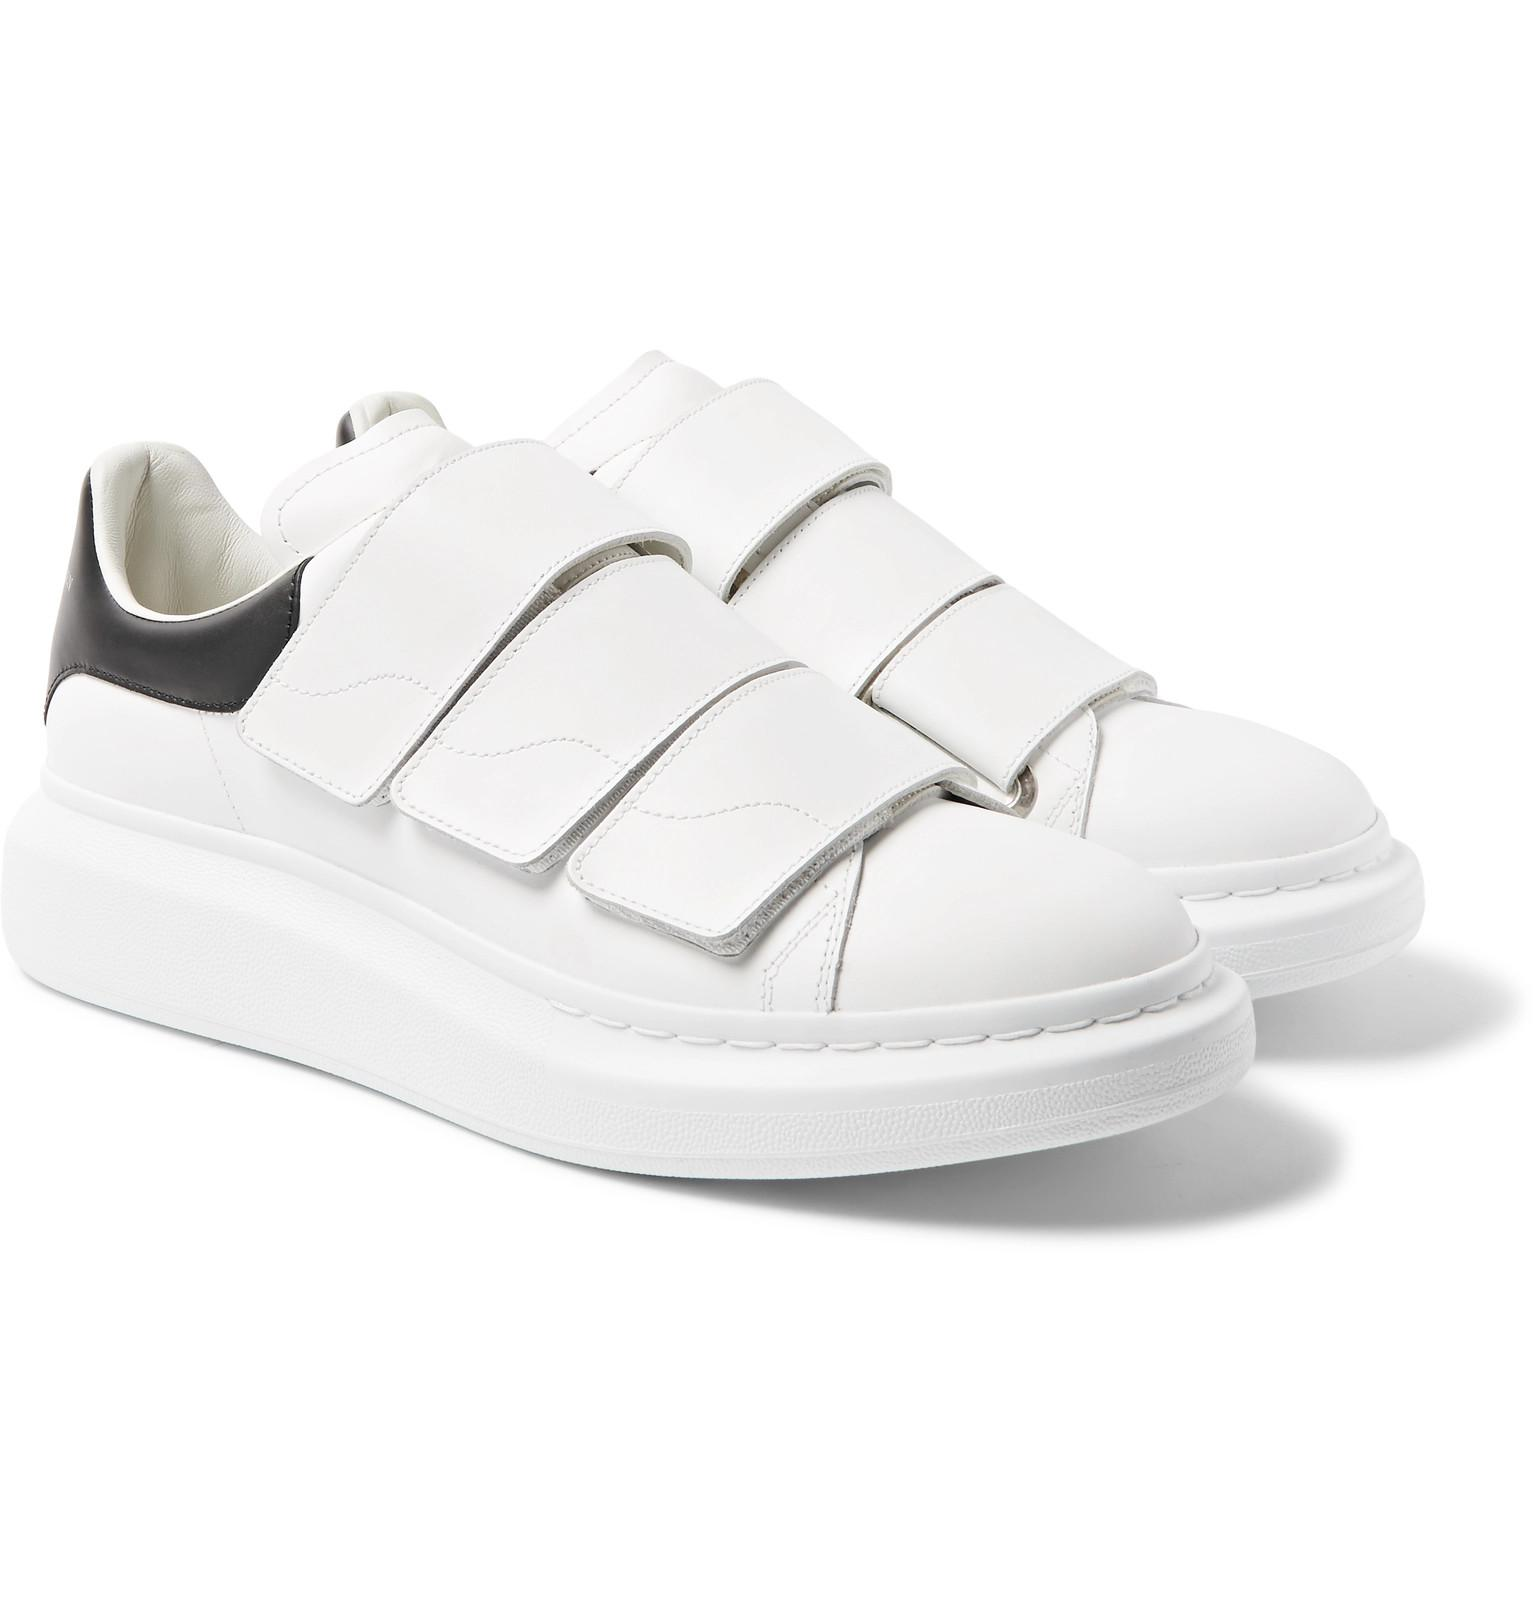 Exaggerated-sole Leather Sneakers - WhiteAlexander McQueen CsIjwxN